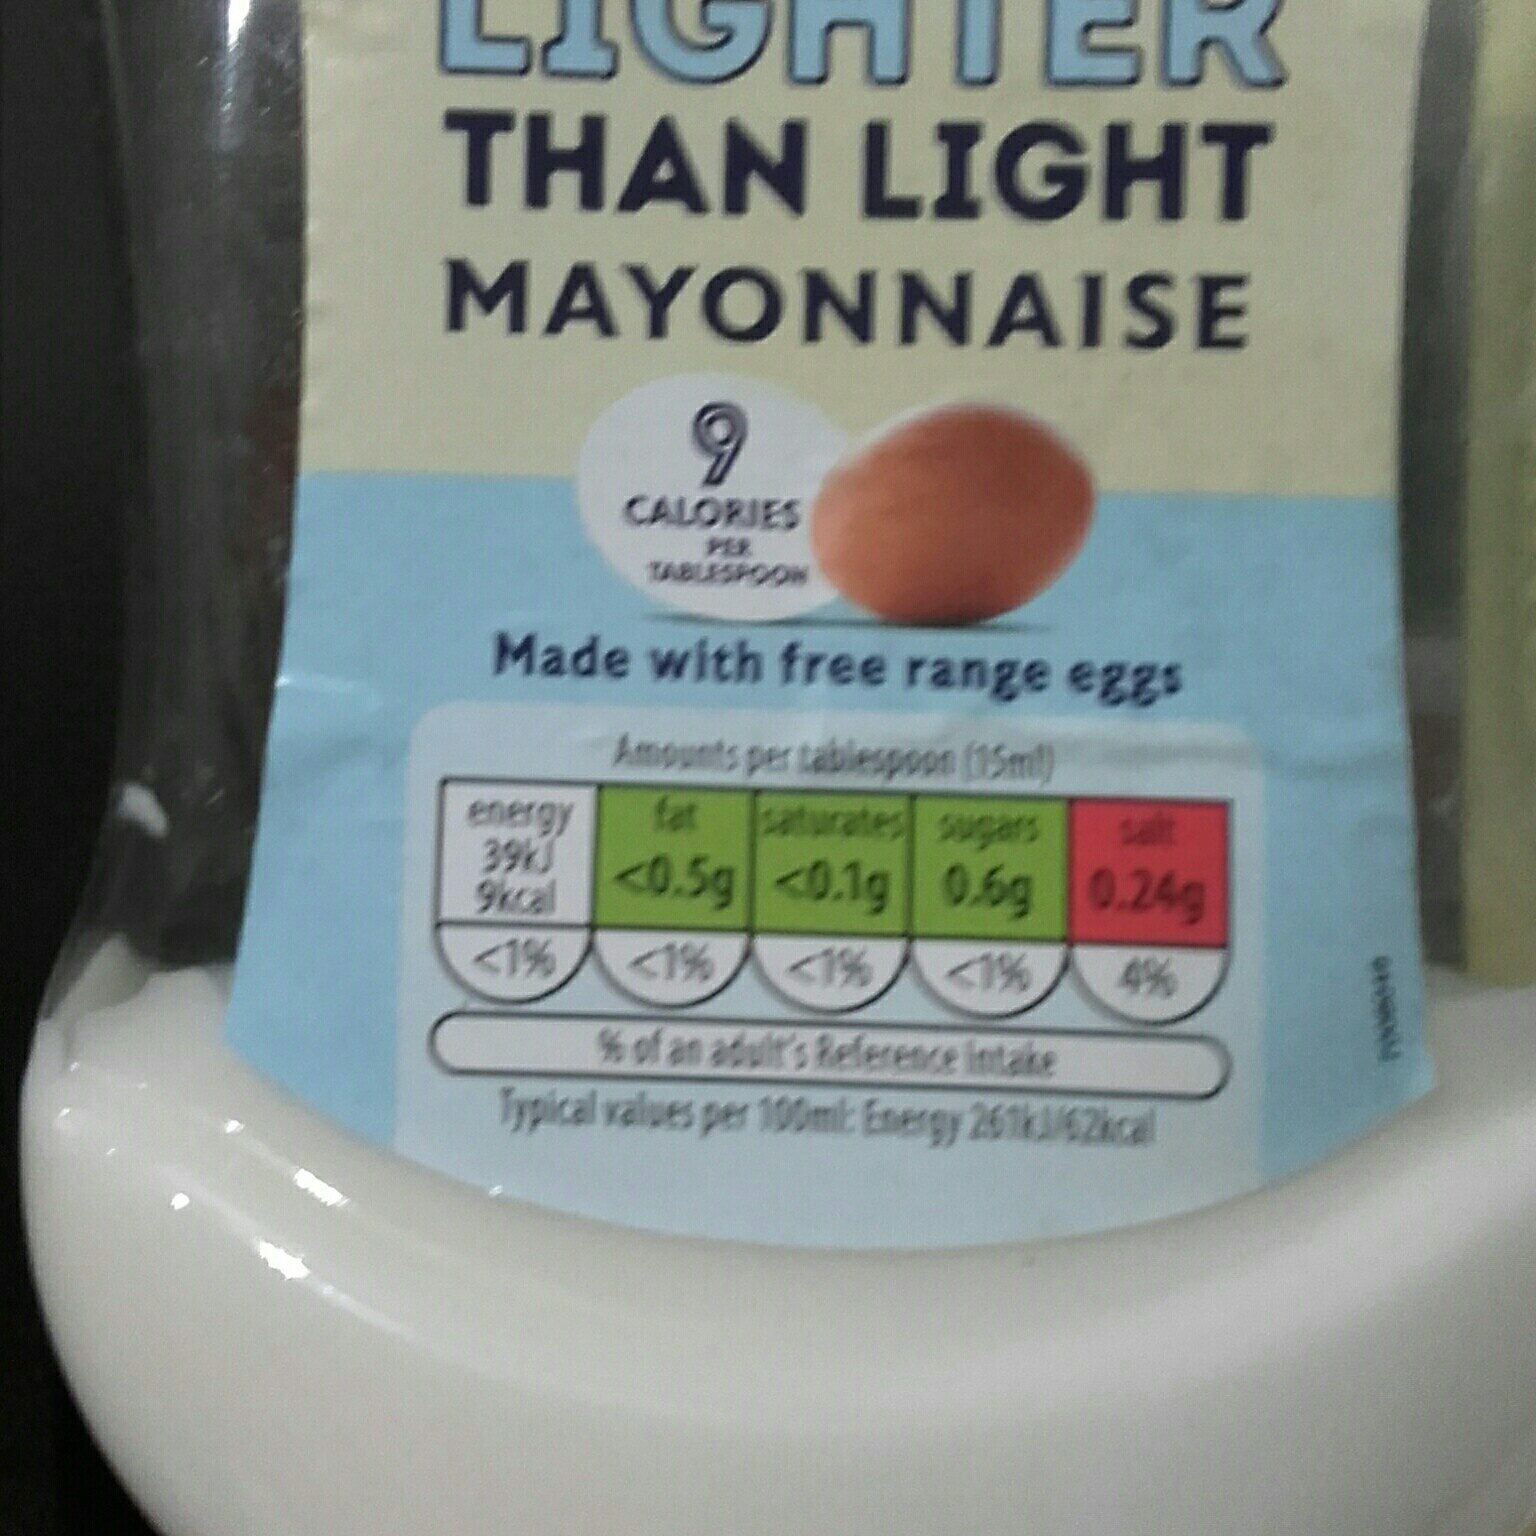 Lighter than light mayonnaise - Produit